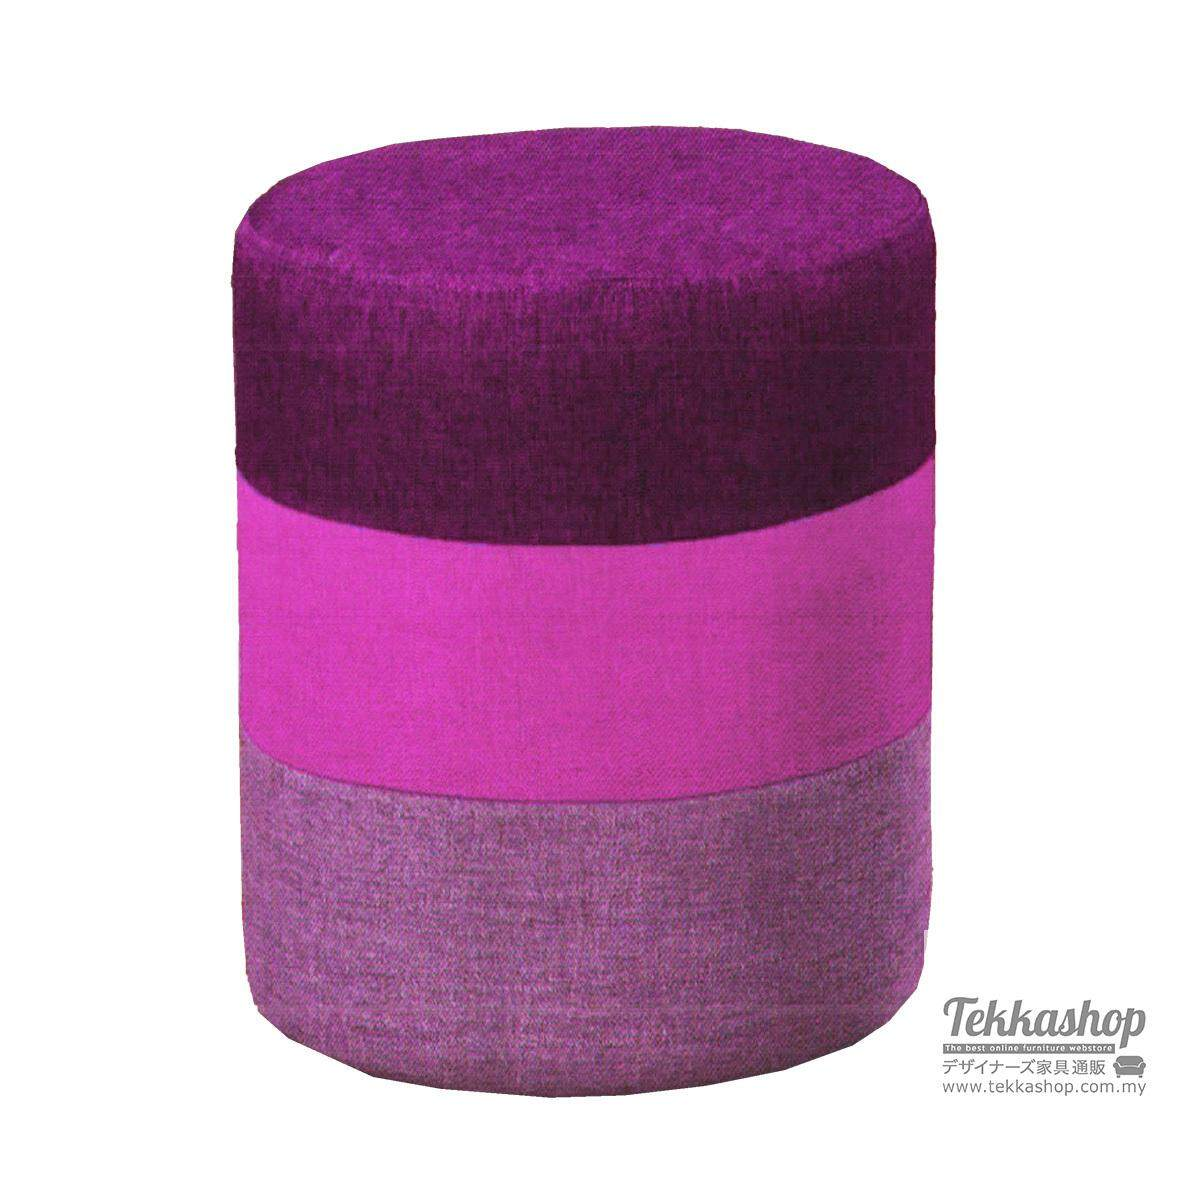 Tekkashop KKM882LC Fabric Round Cube Ottoman Foot Stool (Purple)